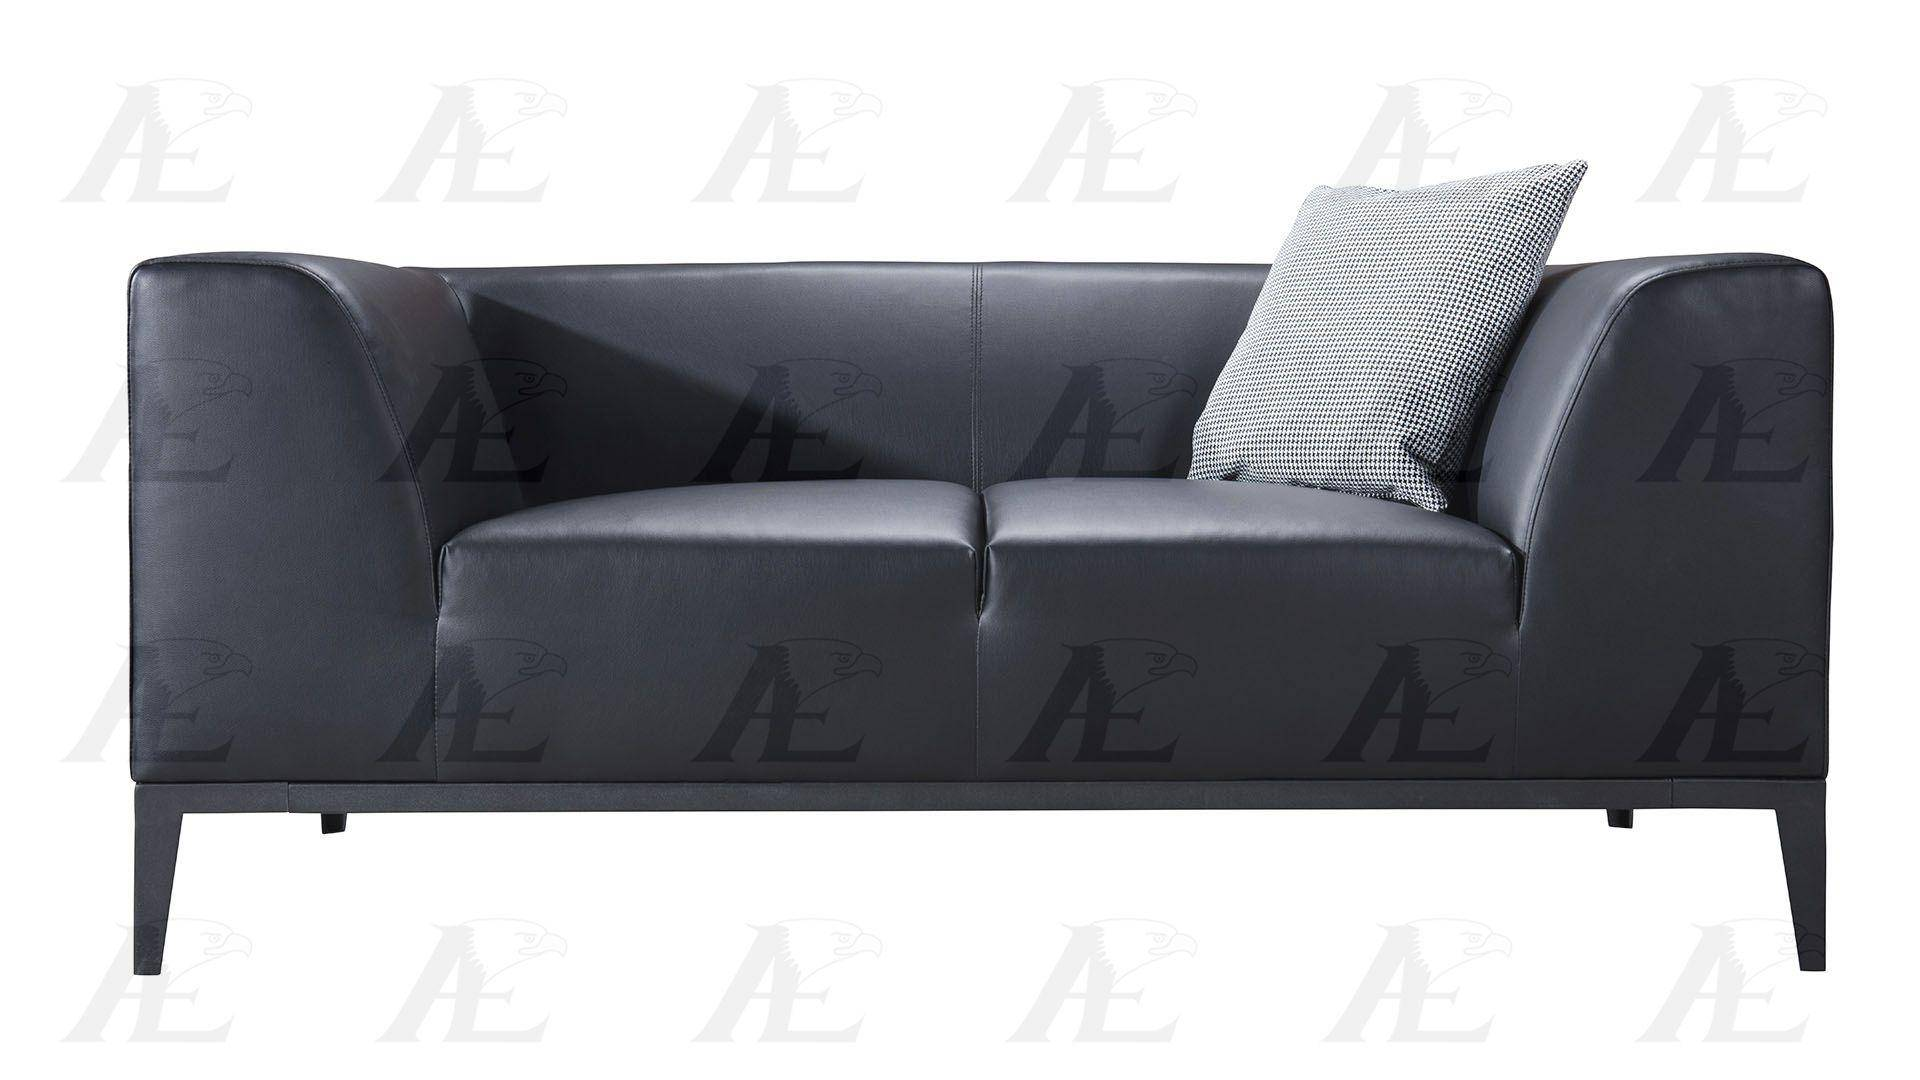 american eagle aed820bk black faux leather living room